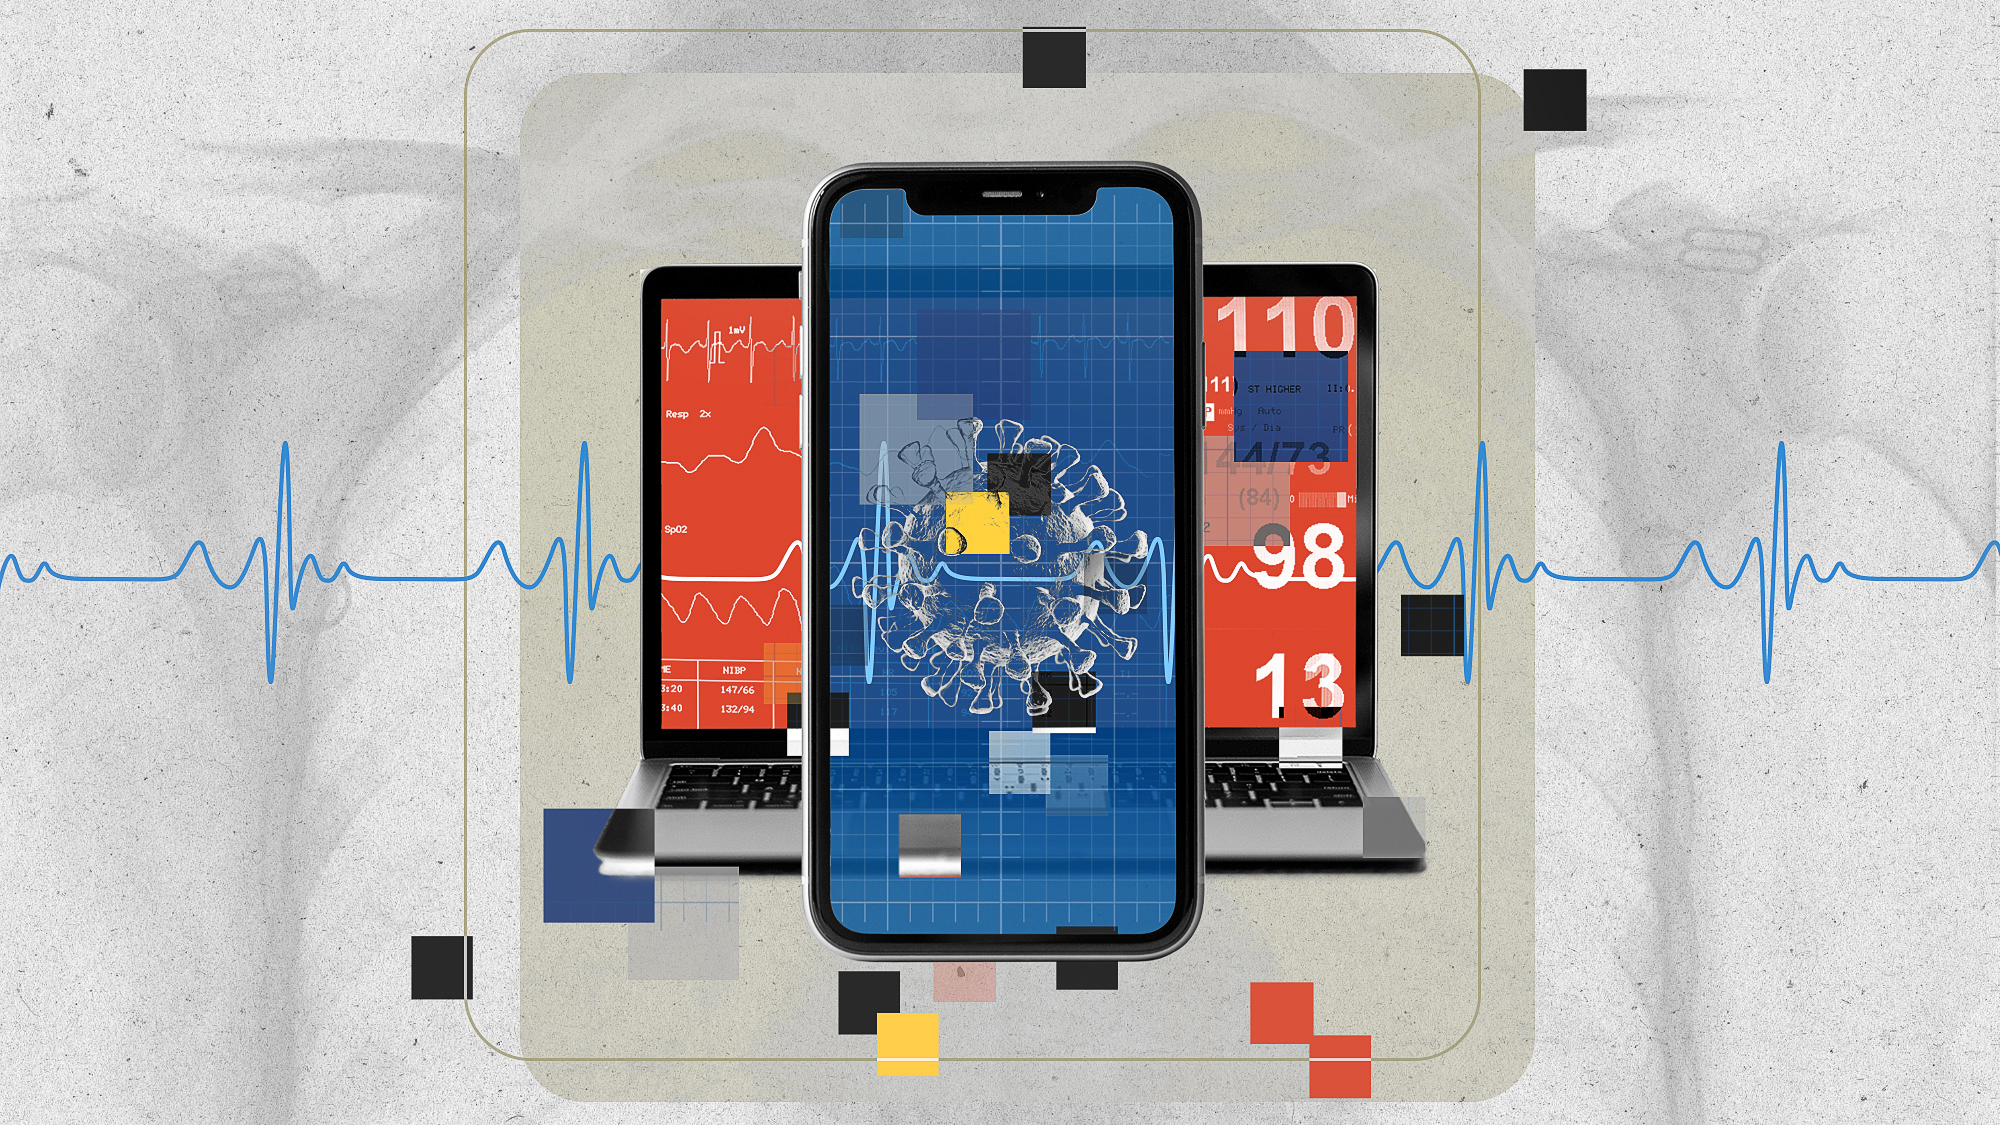 Graphic illustration featuring a collage of a mobile phone, laptop and various medial readouts